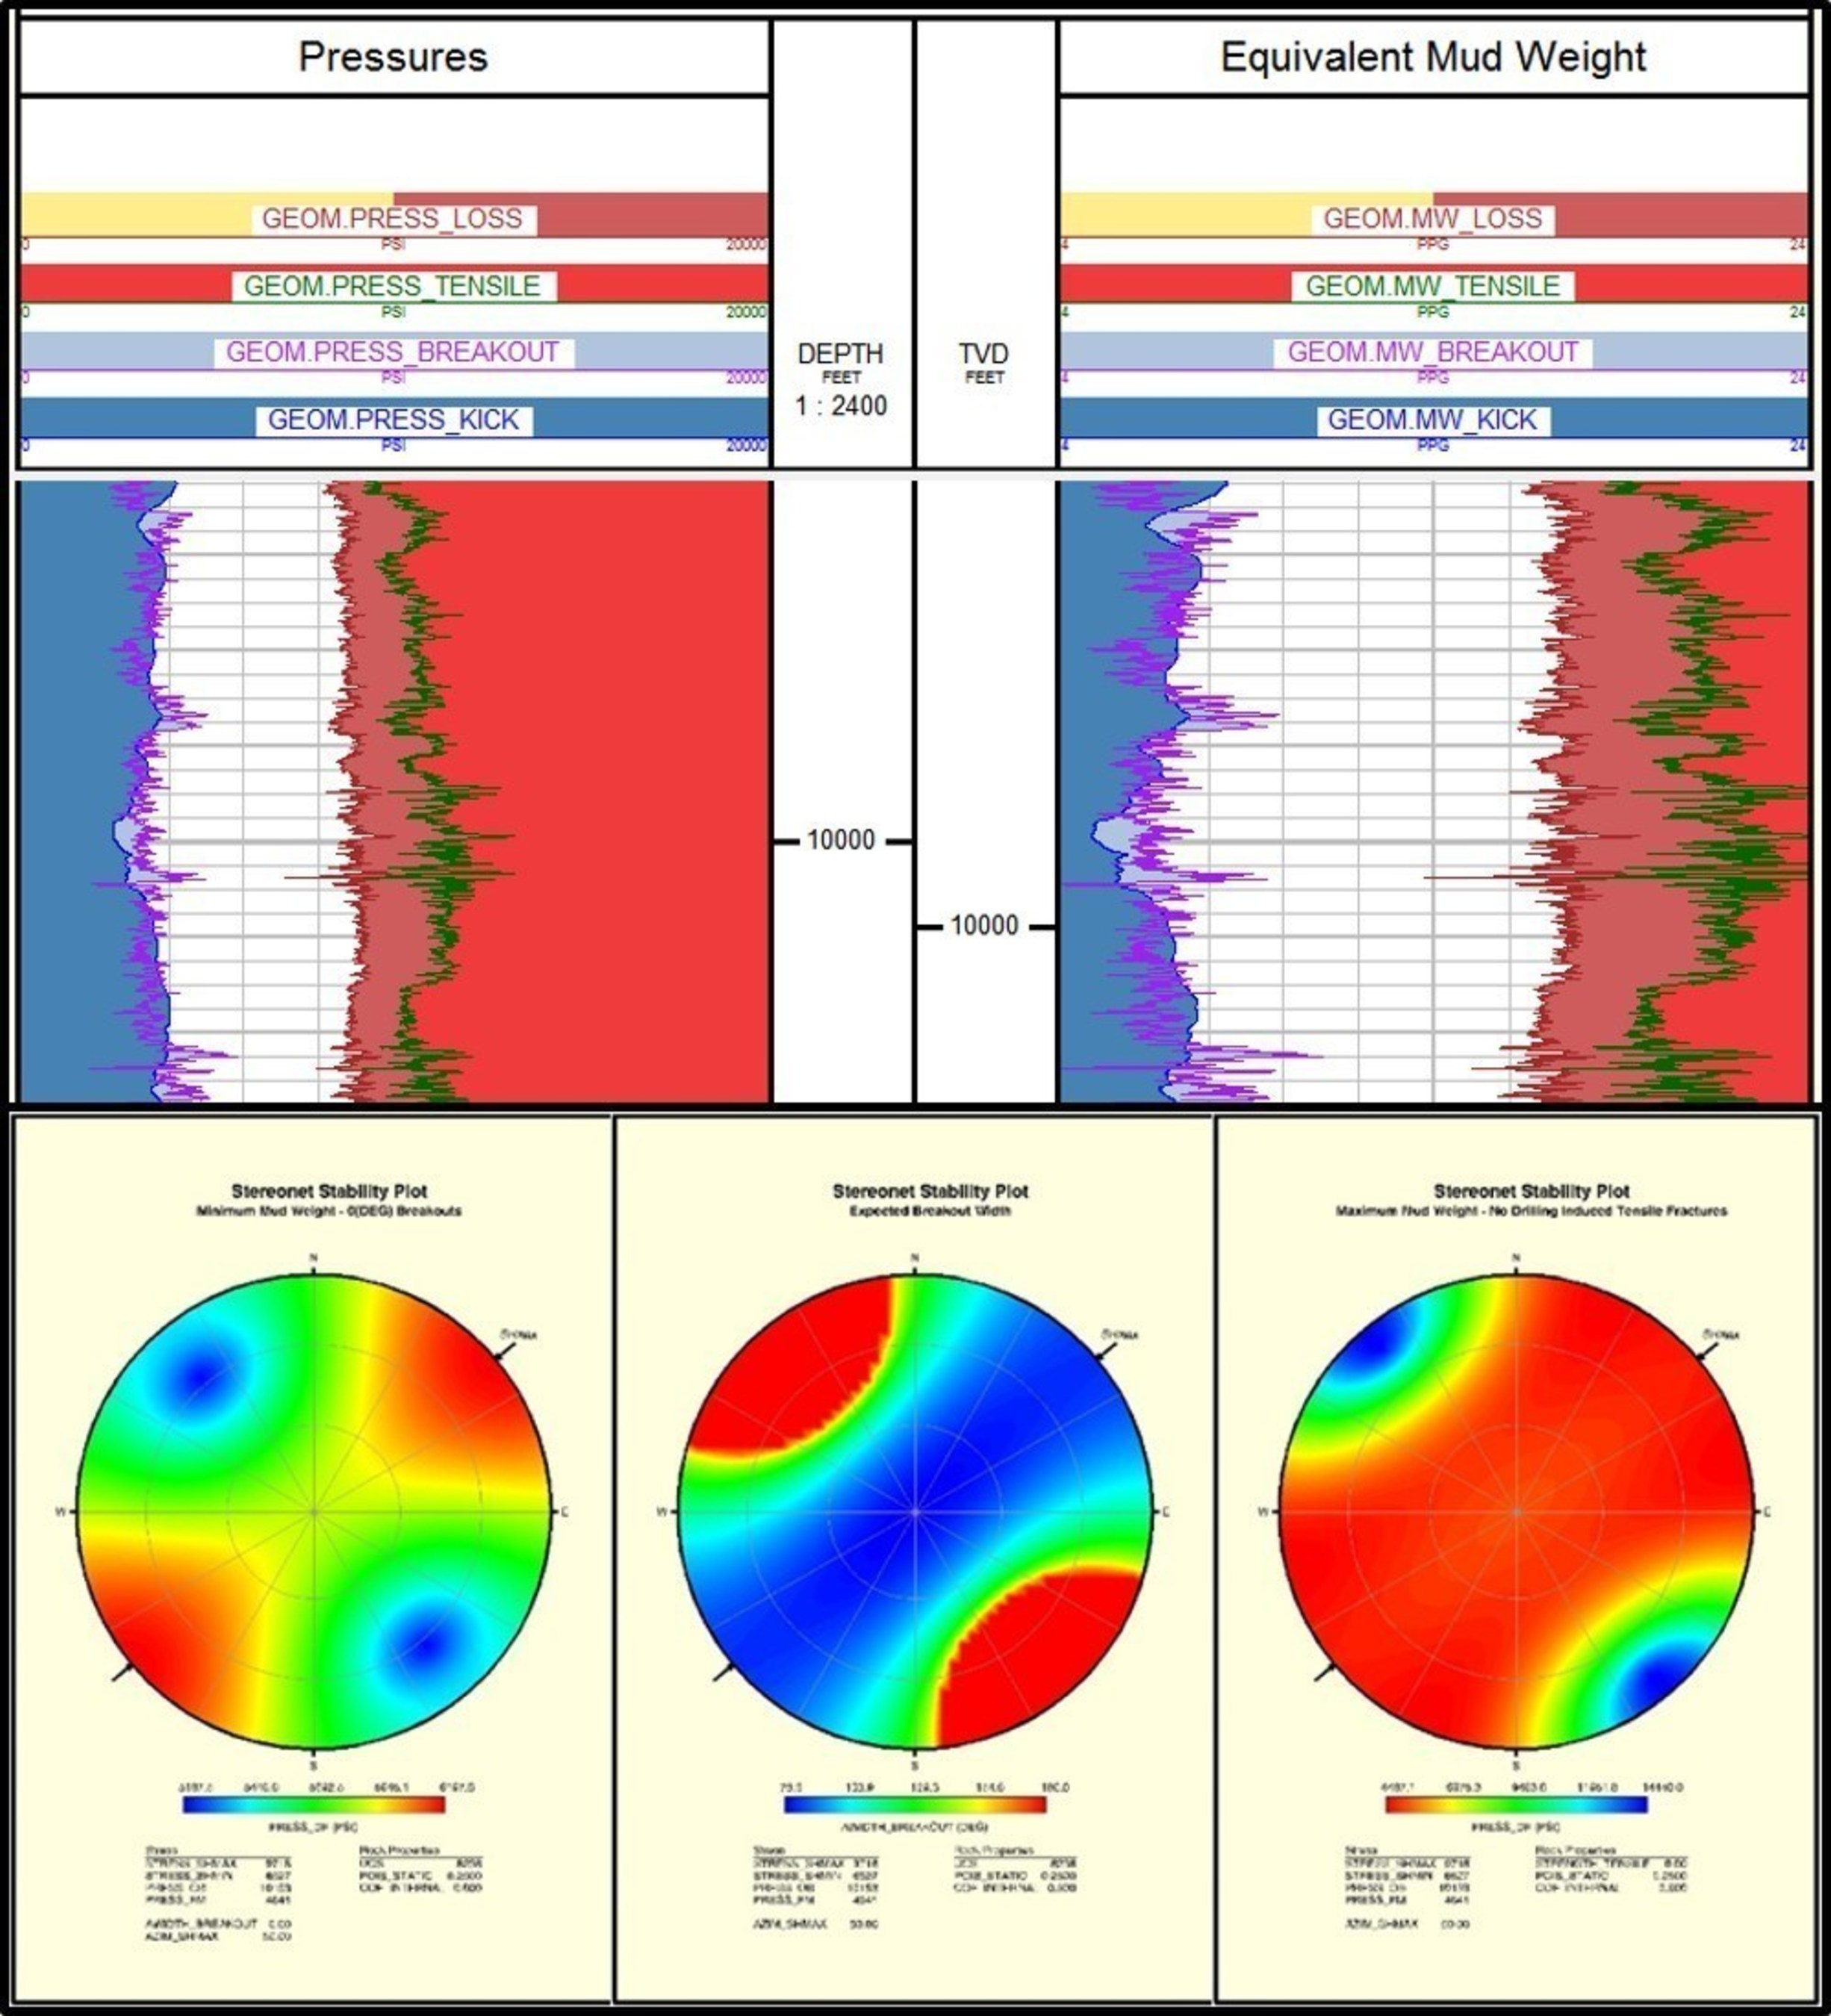 A new Geomechanics module provides a comprehensive suite of applications to assess the mechanical conditions around the wellbore.